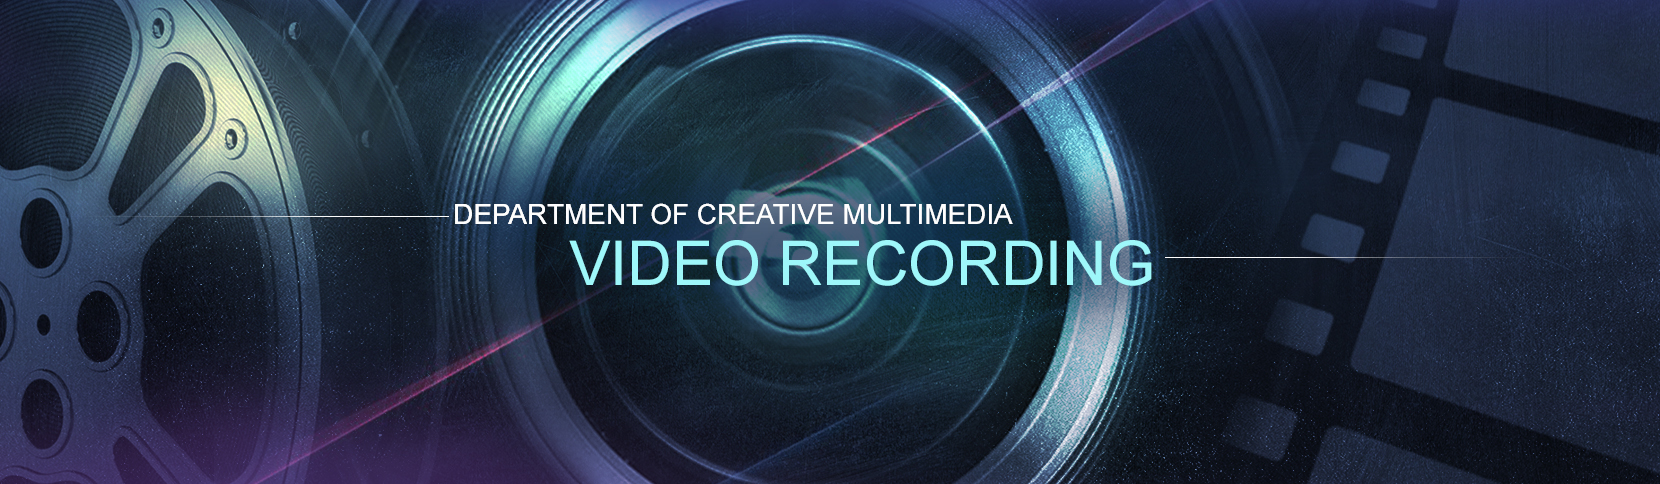 Creative Multimedia Video